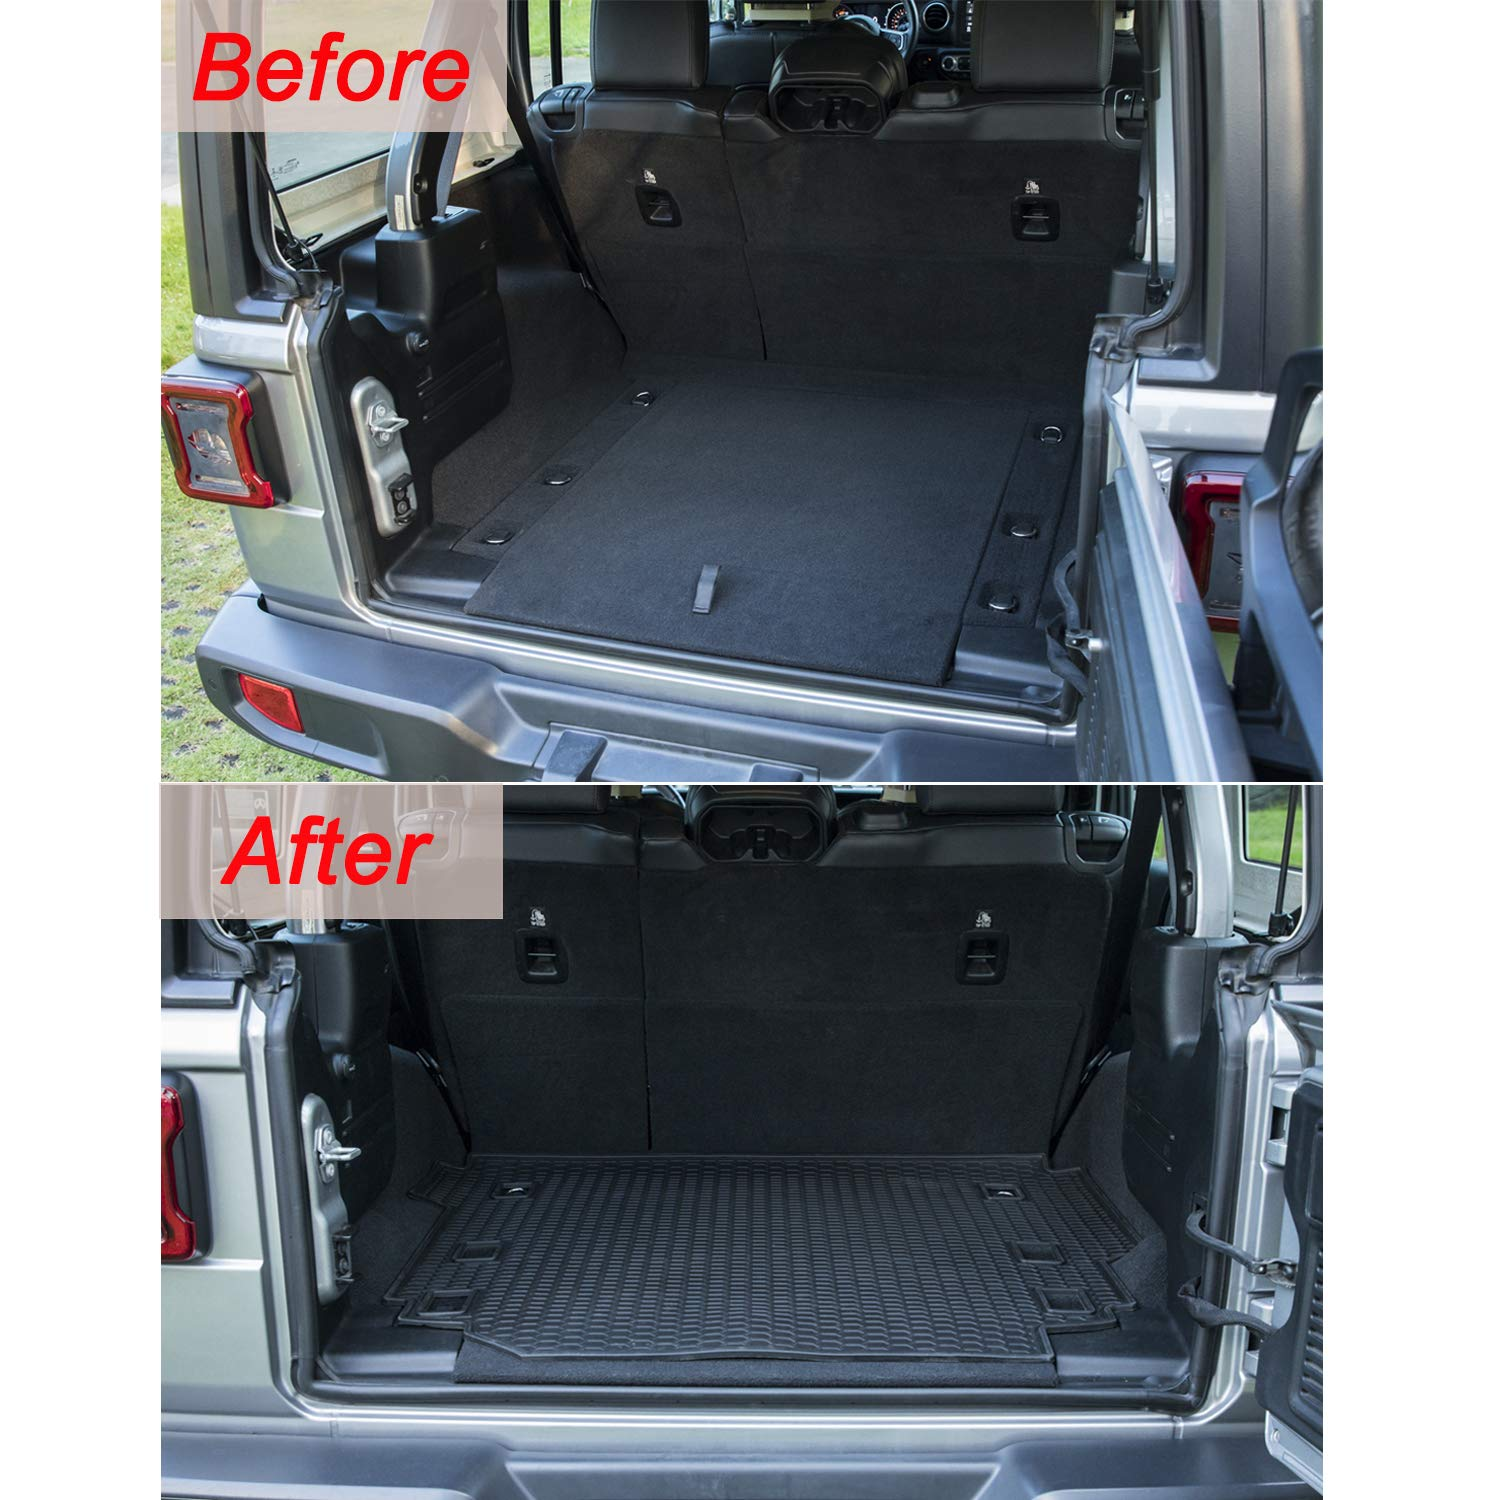 bonbo Rear Trunk Floor Mat for Jeep Wrangler JL 4 Doors 2018 2019,Custom Fit,Cargo Liner with Odorless and Heavy Duty Rubber,All Weather Guard